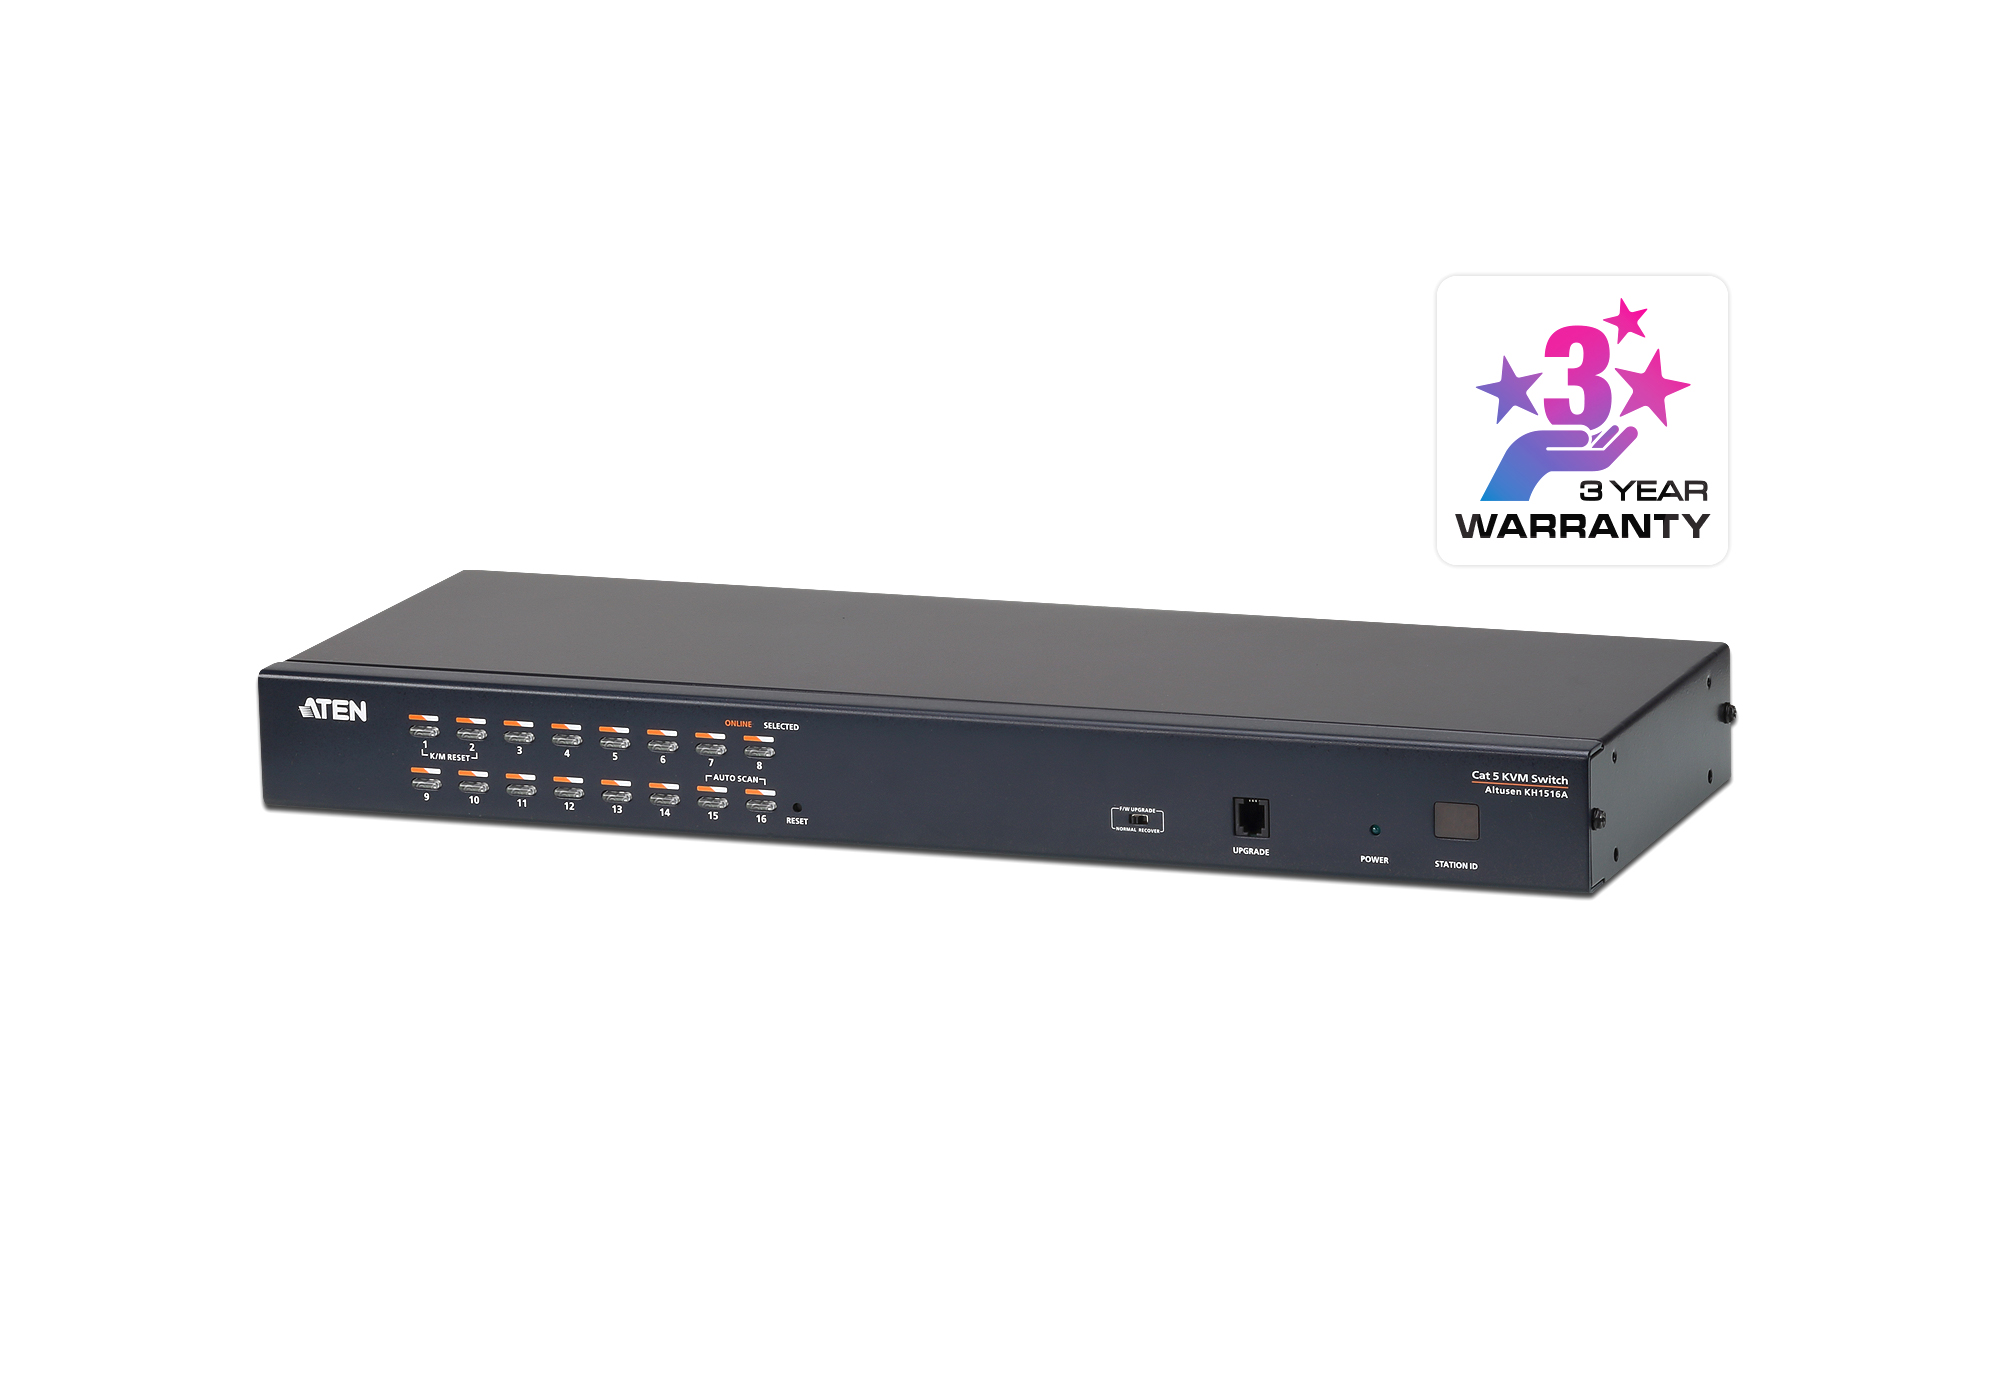 Commutateur KVM (DisplayPort, HDMI, DVI, VGA) multi-interface Cat 5 à 16 ports-2